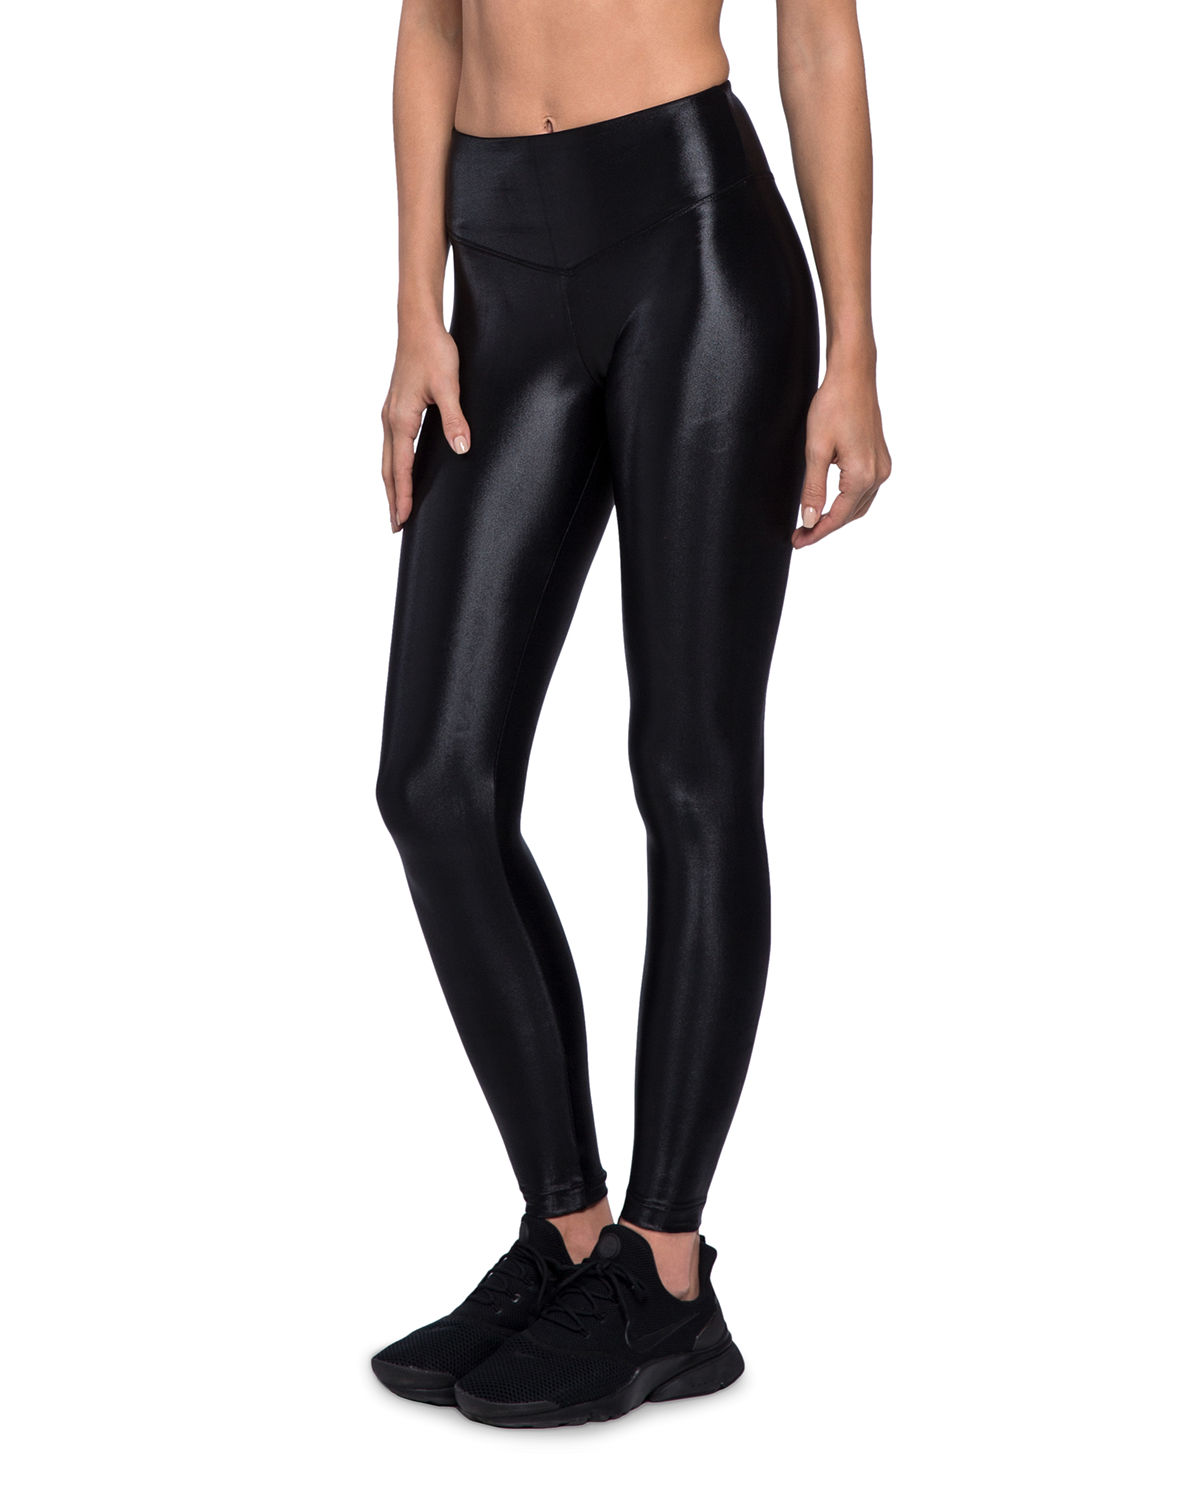 Lustrous High-Rise Athletic Leggings